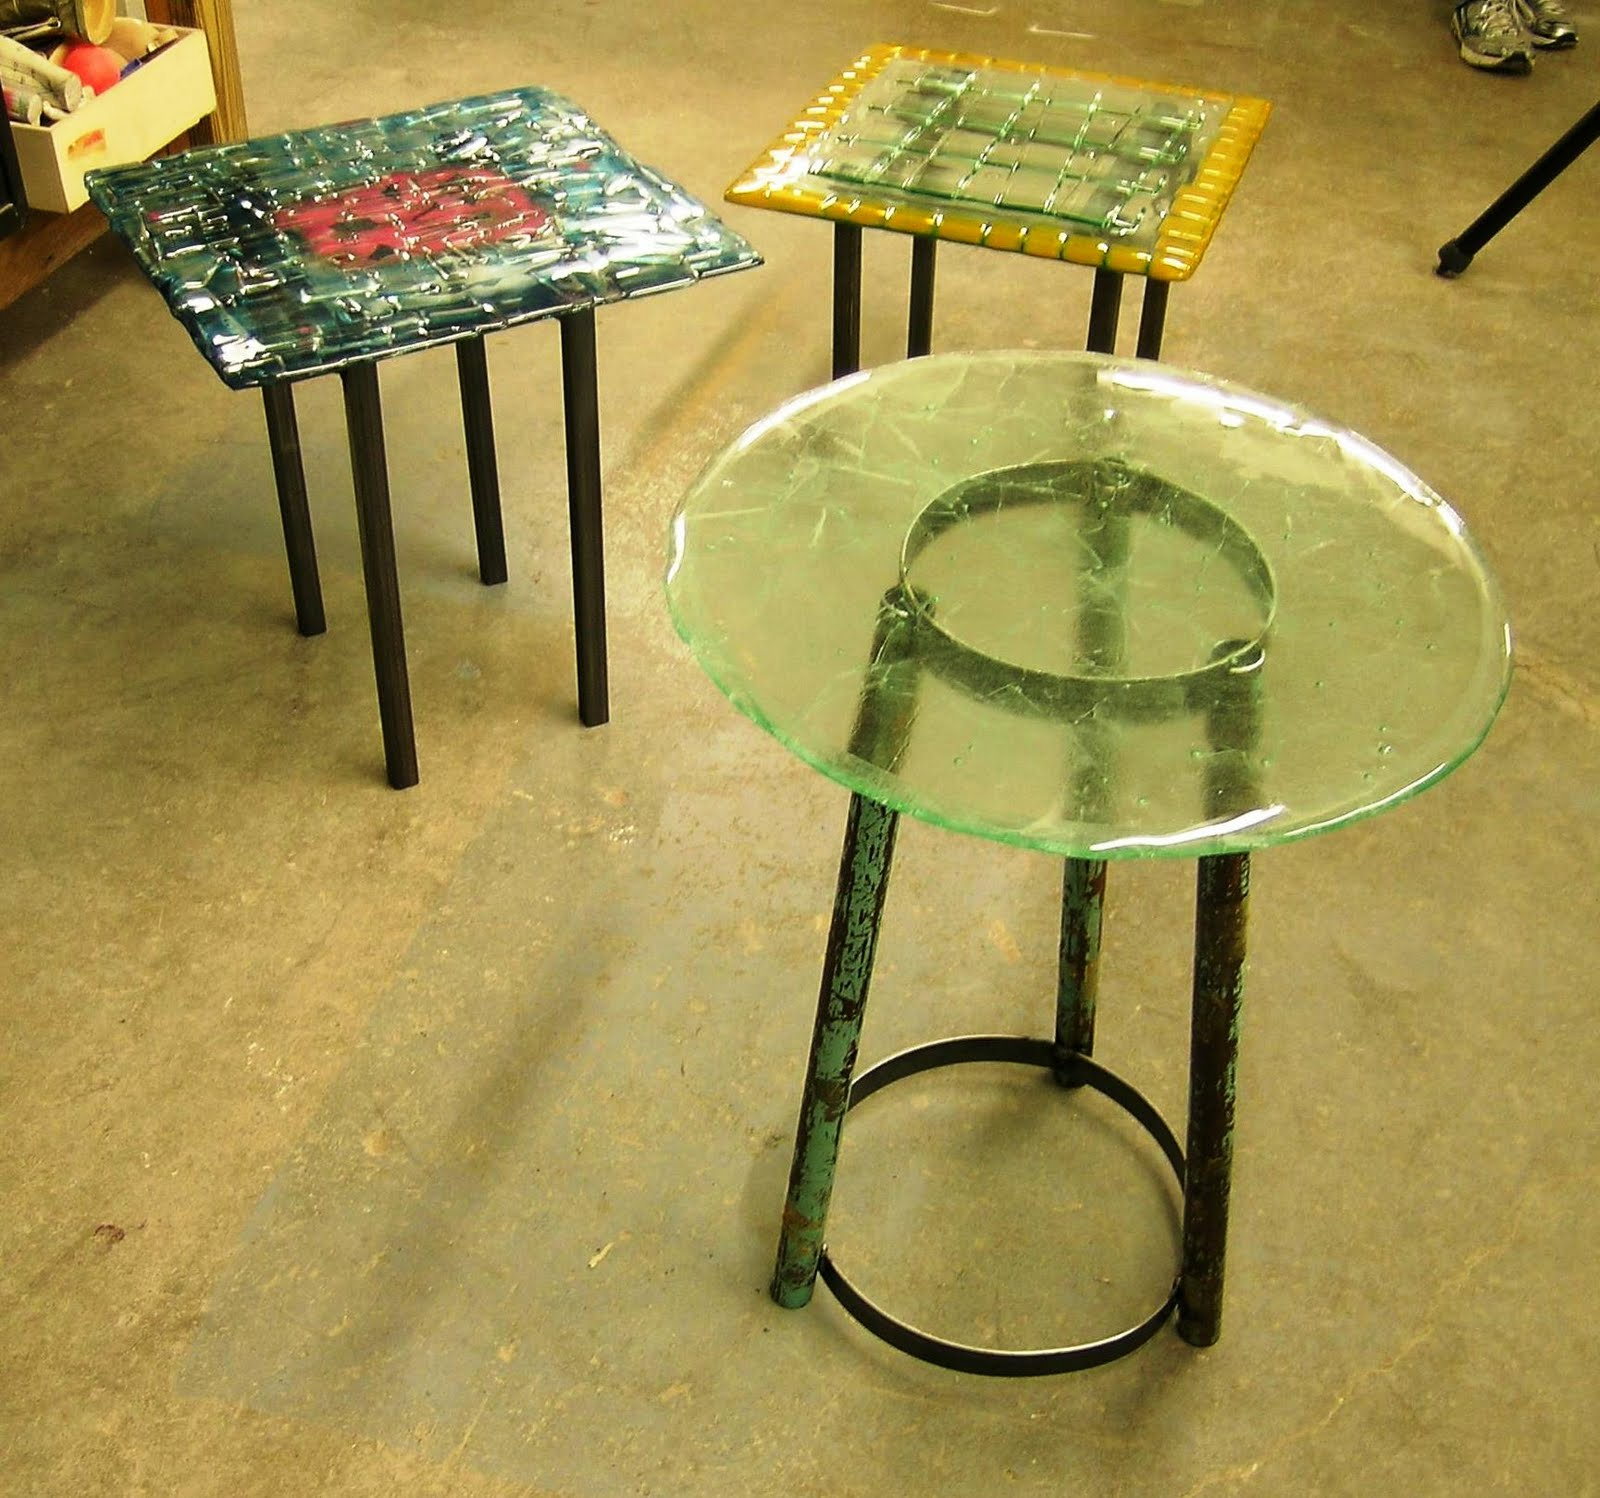 table recycled materials. Making Functional Art From Recycled Materials Class | Washington Glass Studio Table